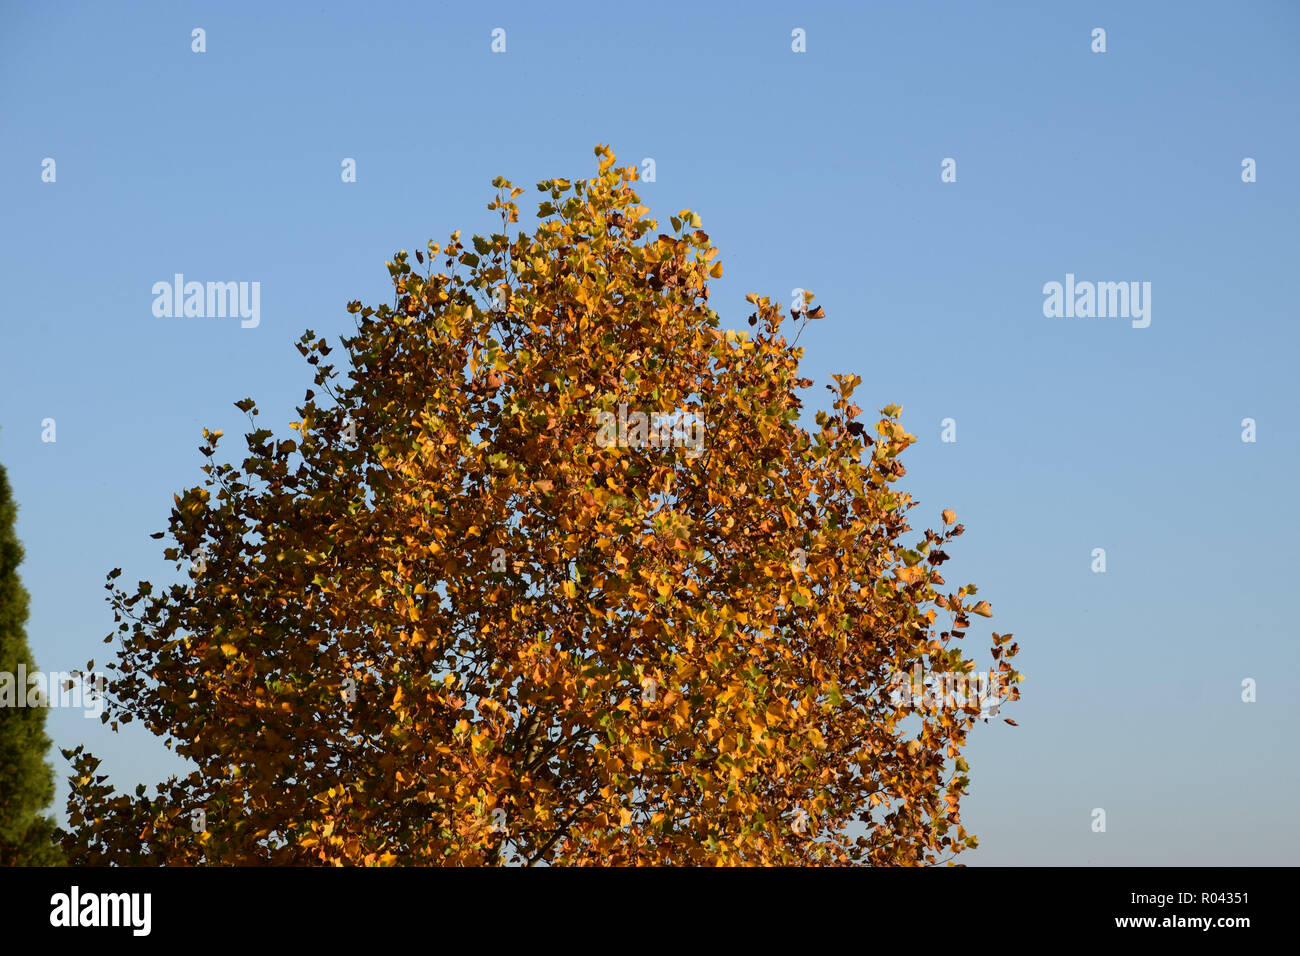 autumnal deciduous tree as a symbol for the end of the year, autumnal rural scene with colorfully colored deciduous tree and clear blue sky - Stock Image